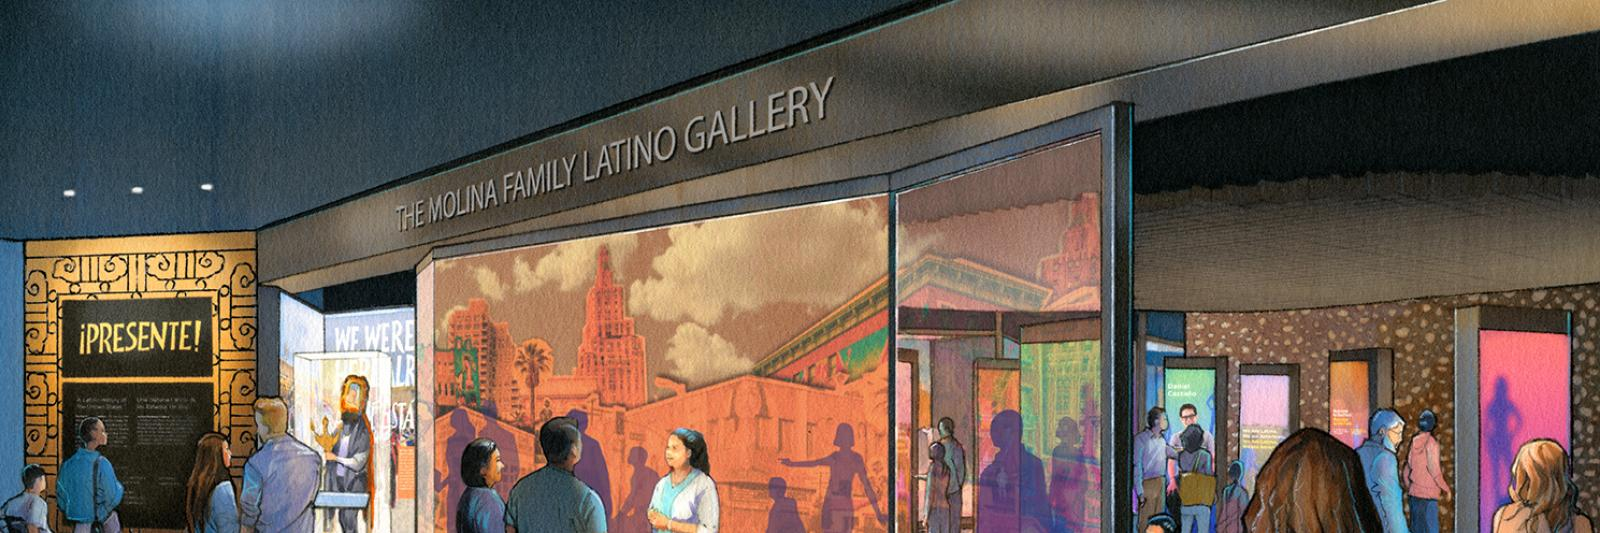 Artist rendering of the entrance to the Molina Family Latino Gallery.